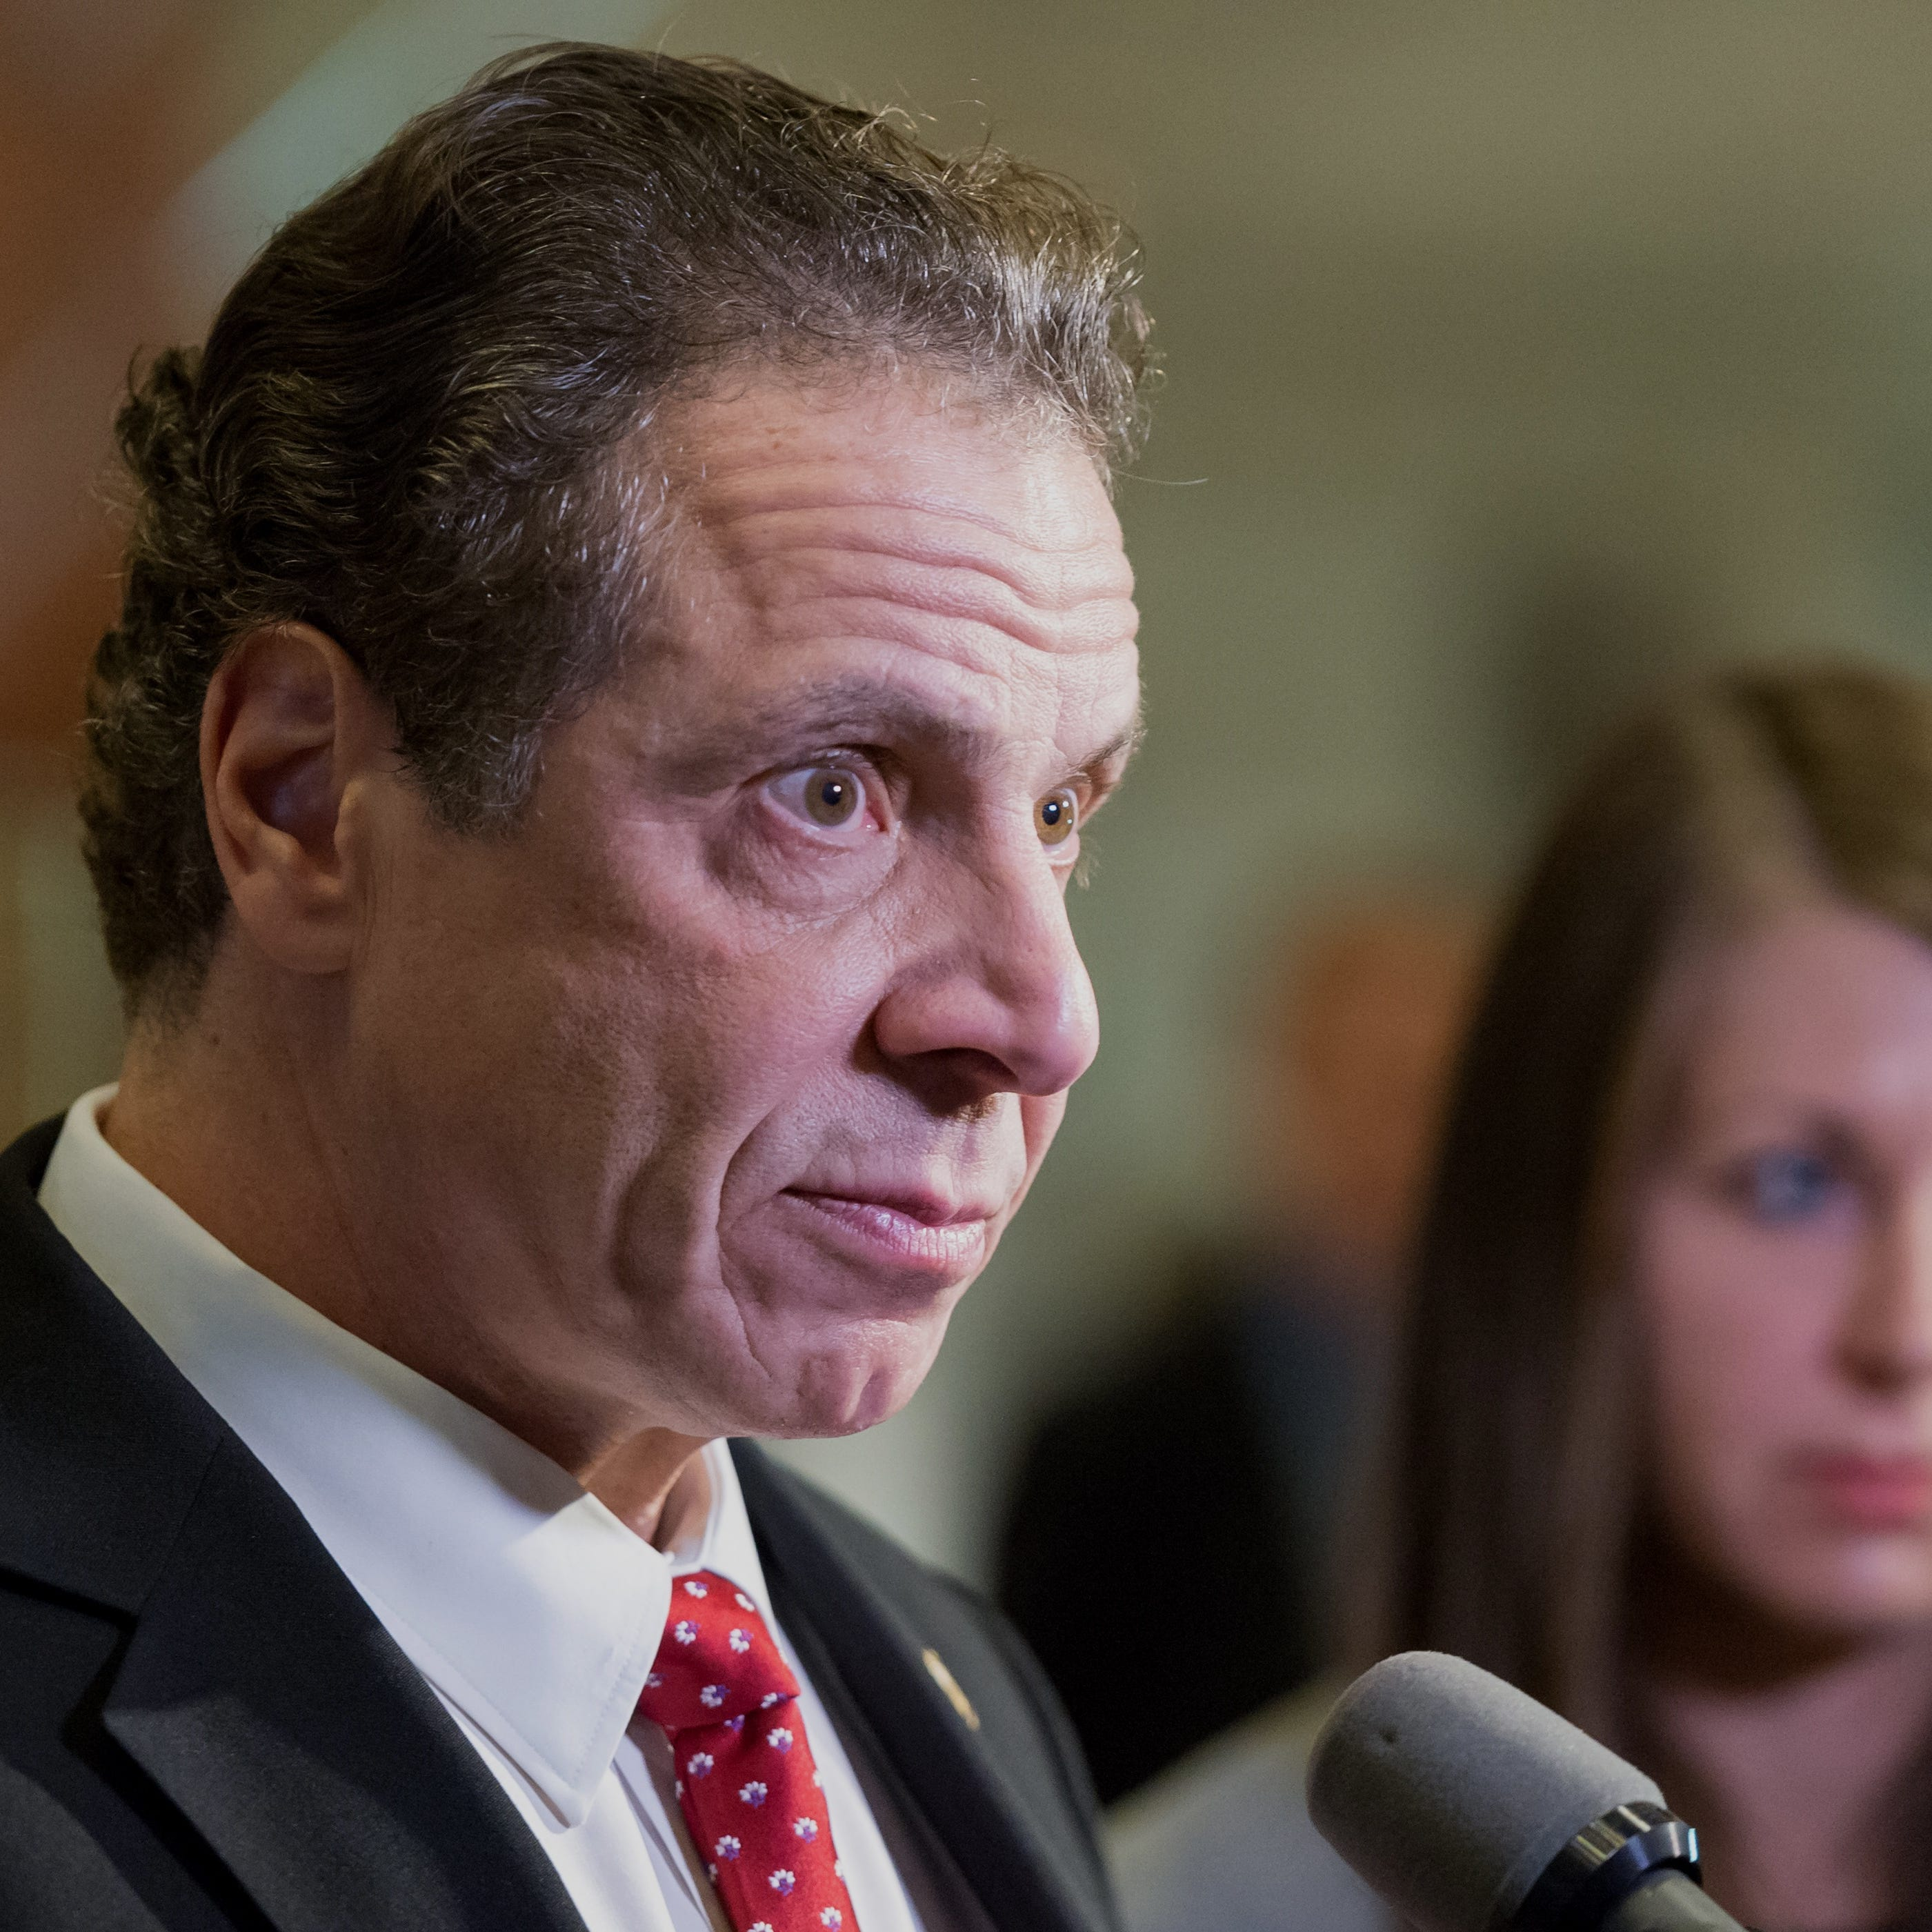 Live From Albany: What would you ask Andrew Cuomo and Marc Molinaro at a debate?